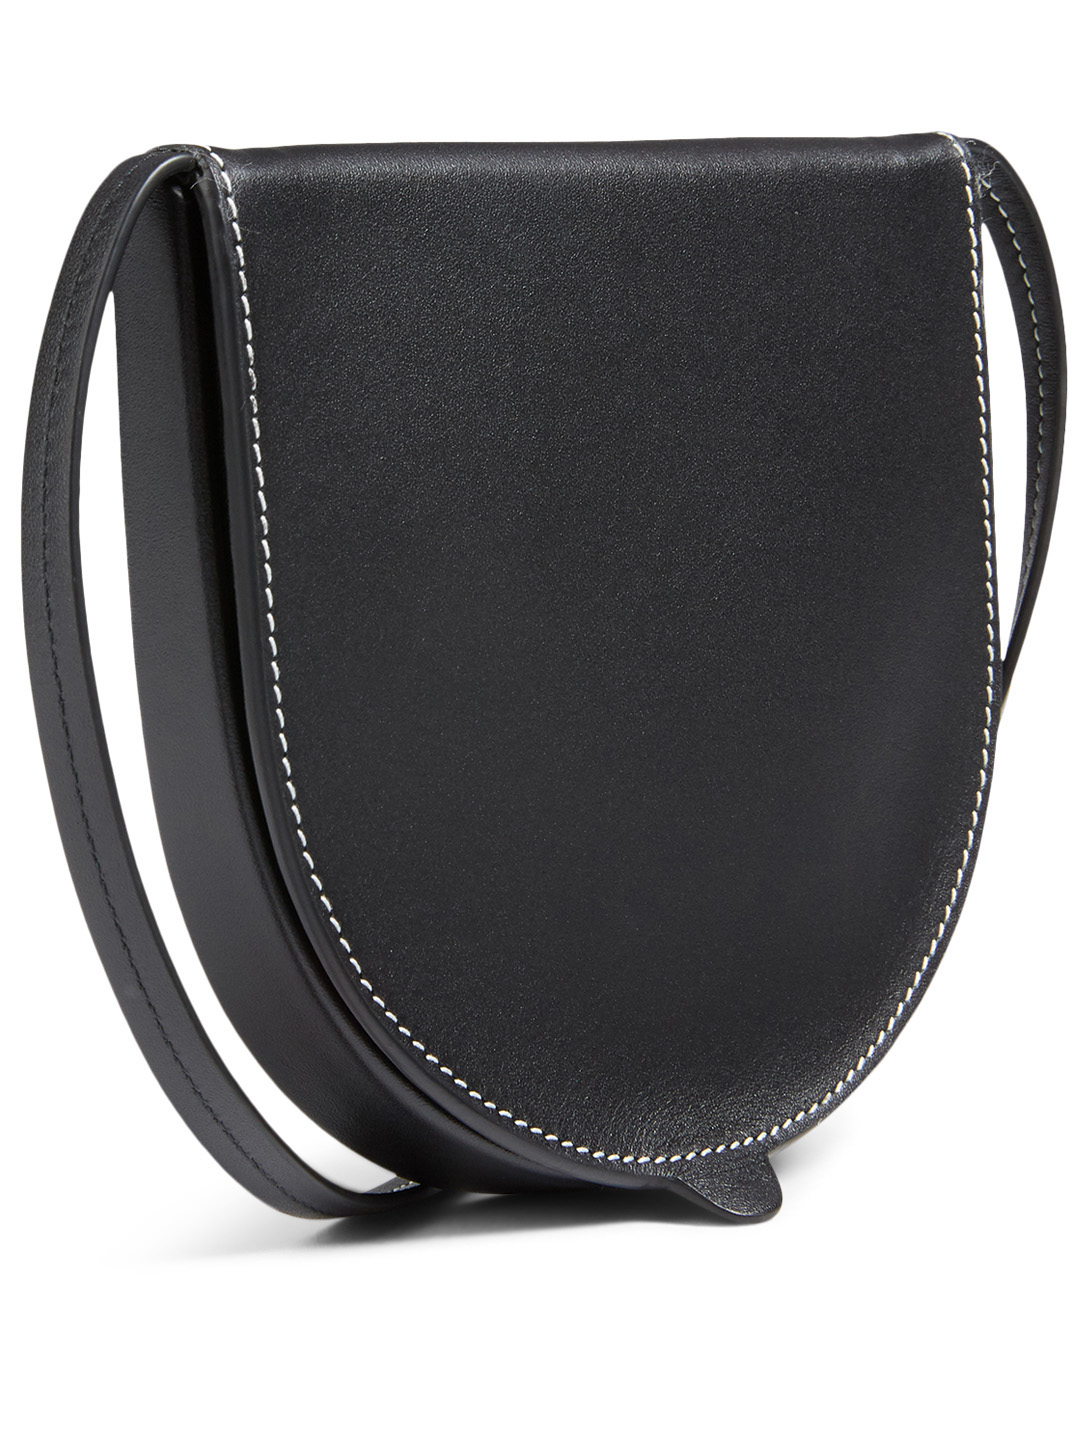 LOEWE Small Heel Leather Pouch Bag Women's Black